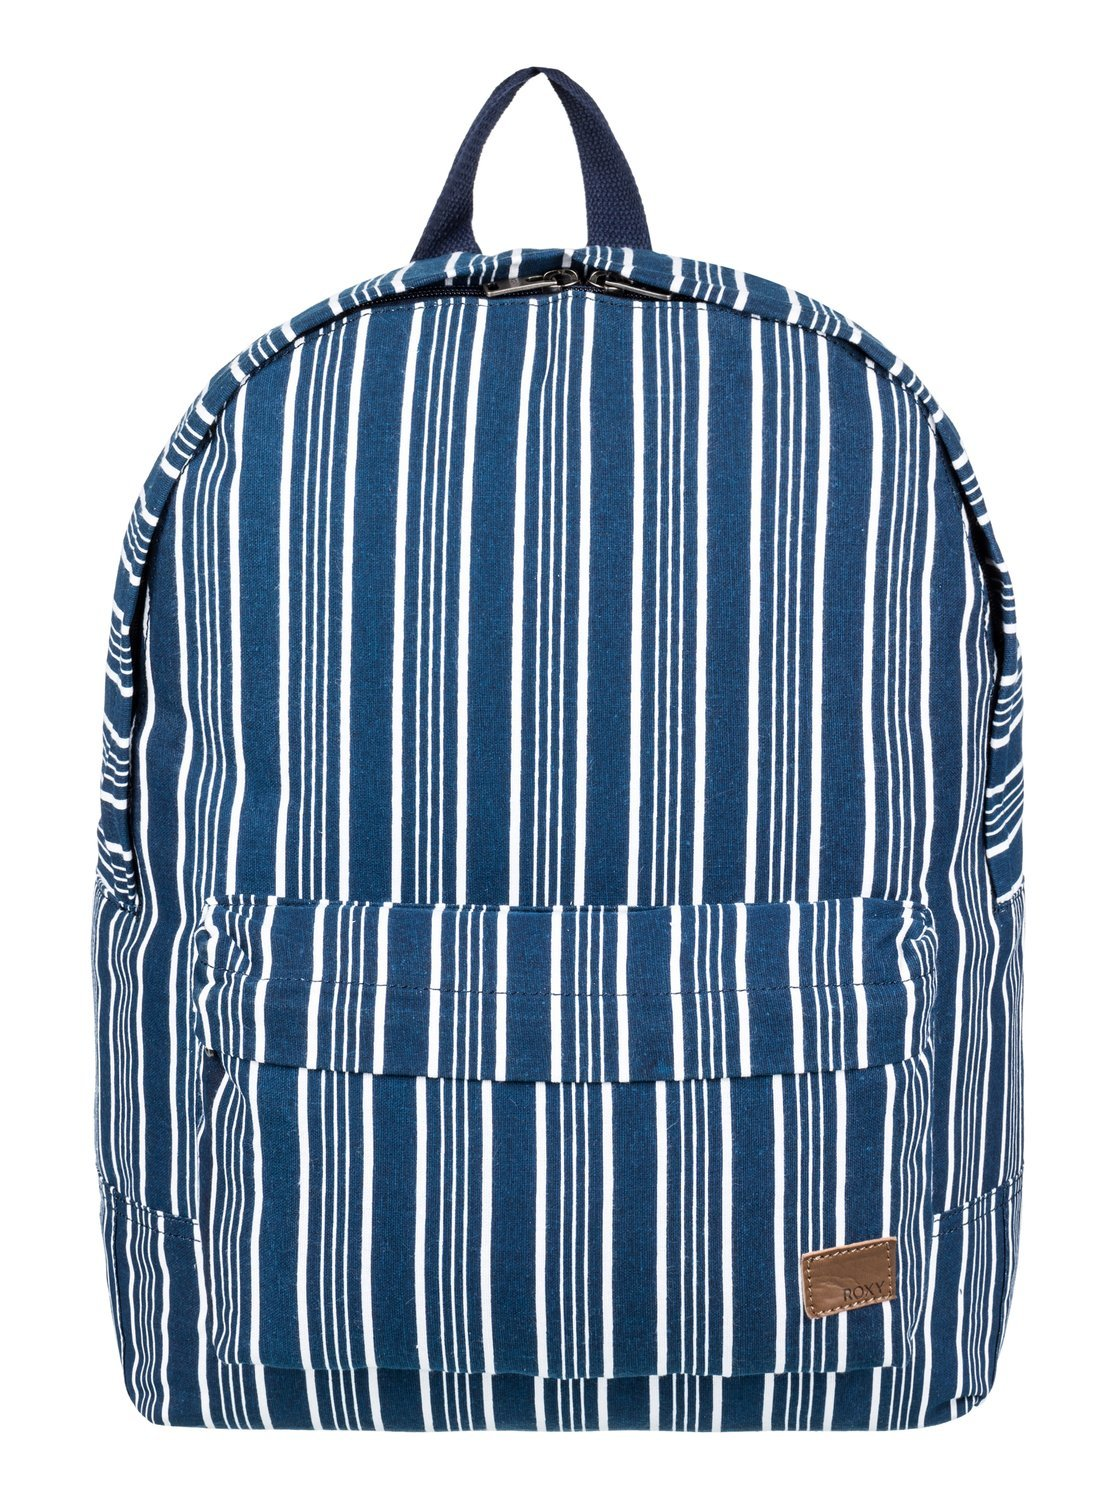 Roxy Junior's Sugar Baby Canvas Backpack, Dress Blues Vertical Stripes, One Size